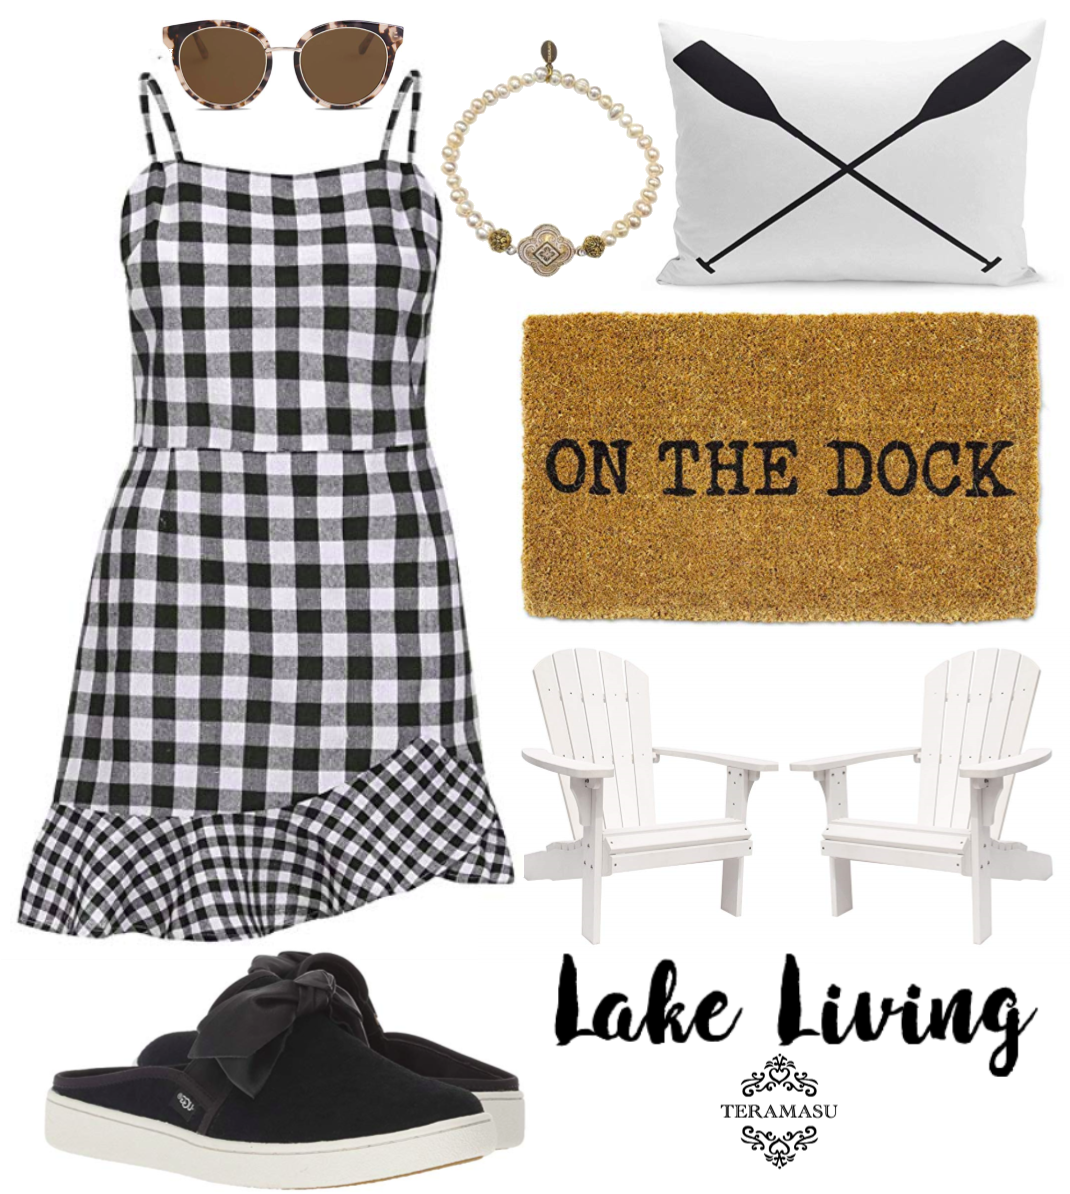 Monday Must-Haves: Lake Living Summer Style Guide from Teramasu